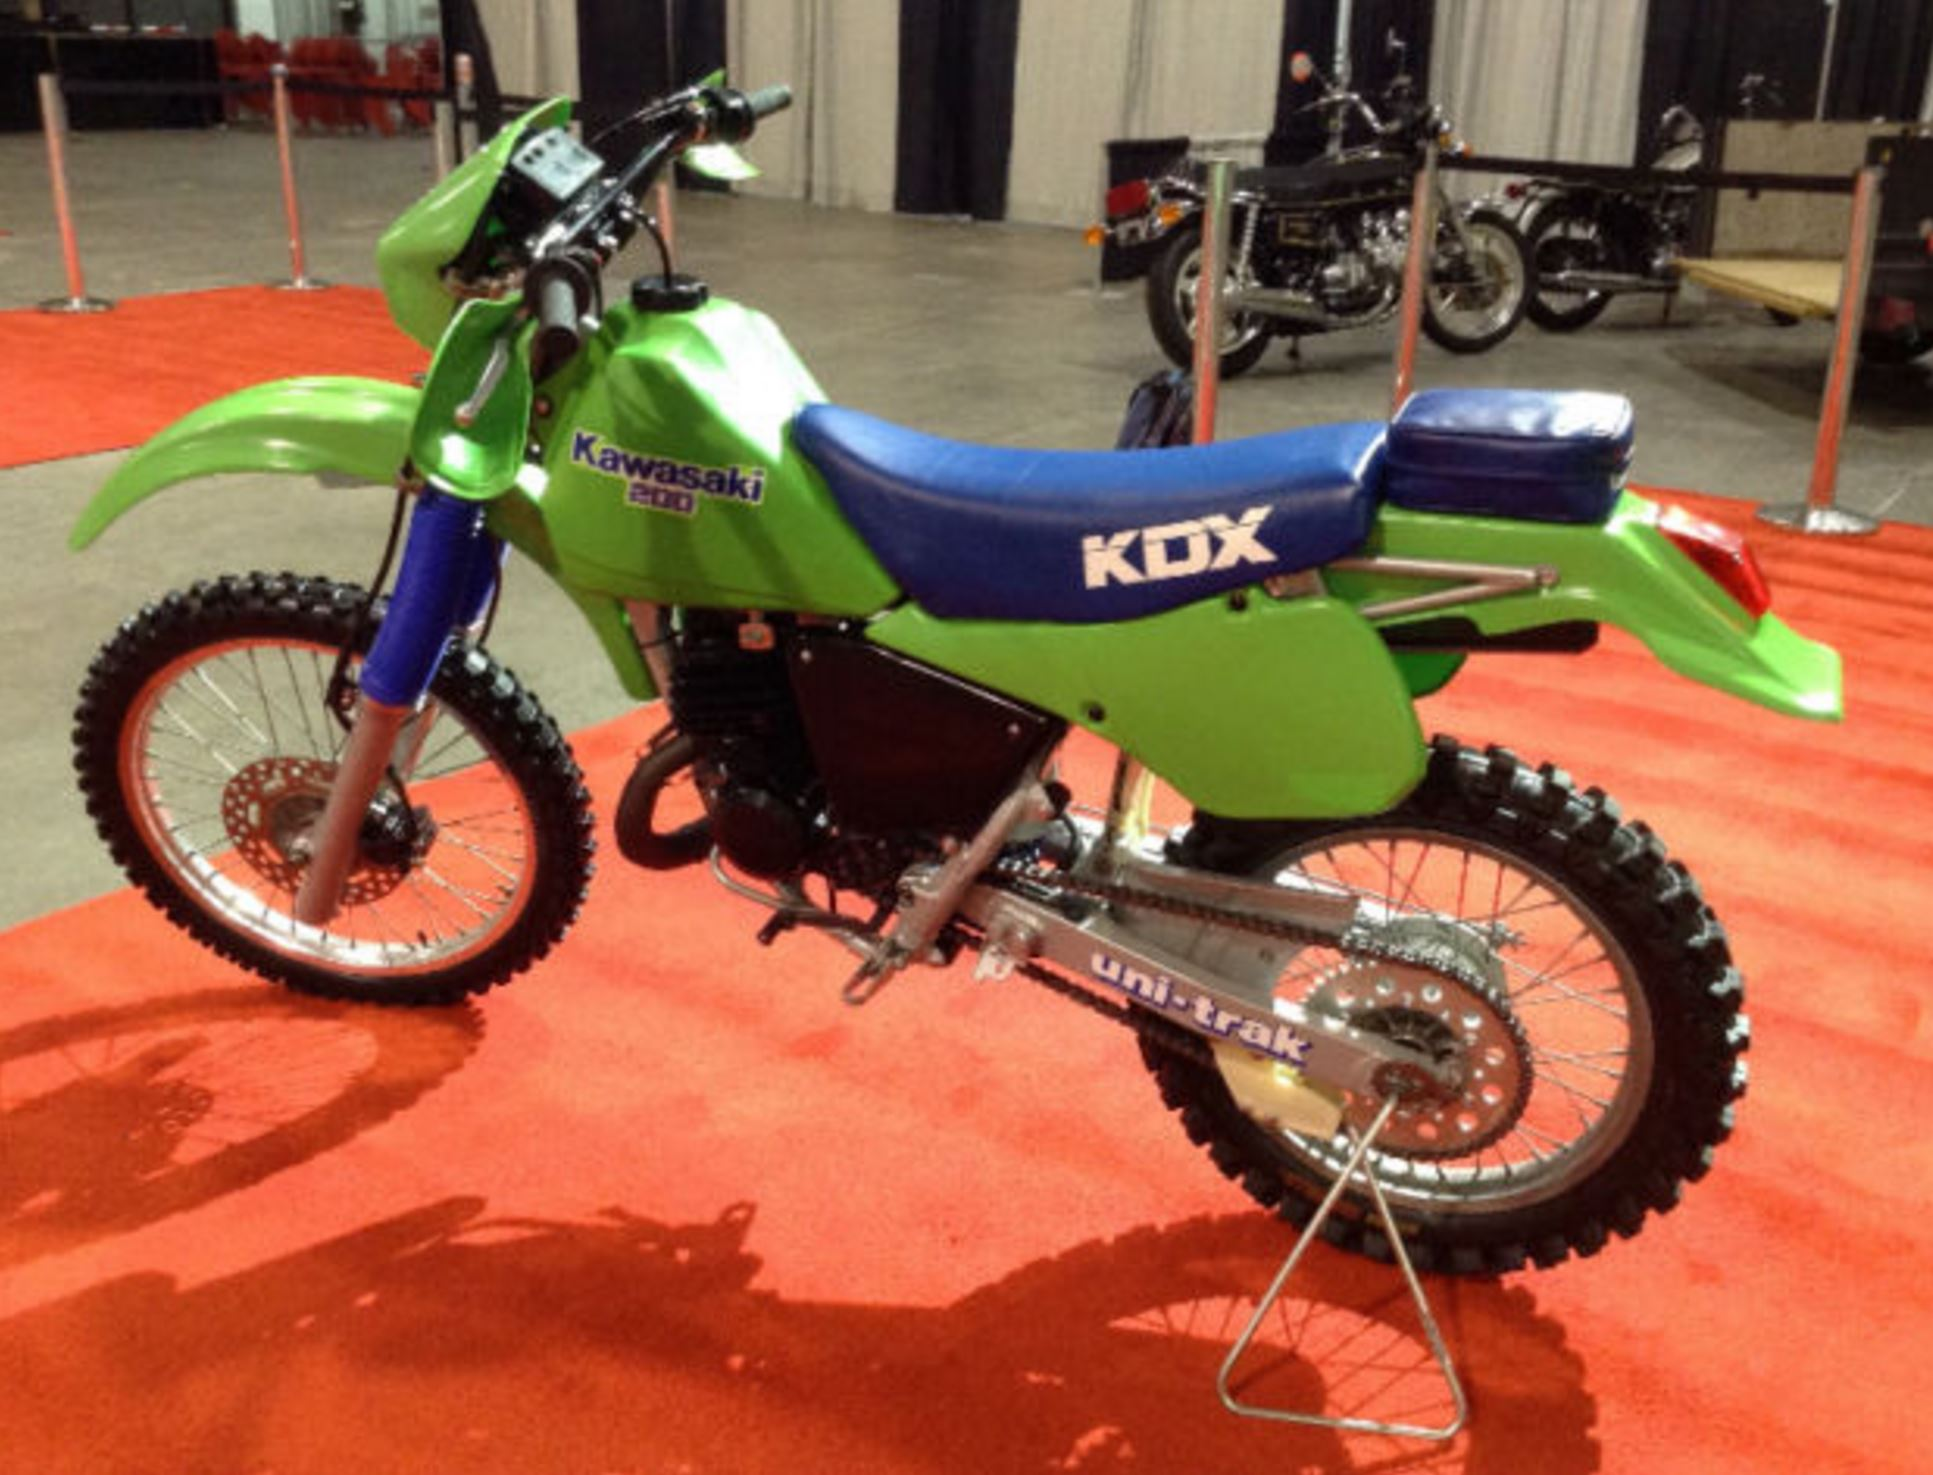 KX KDX200 93. It was well loved by riders, so much so that even Kawasaki  introduced a 250